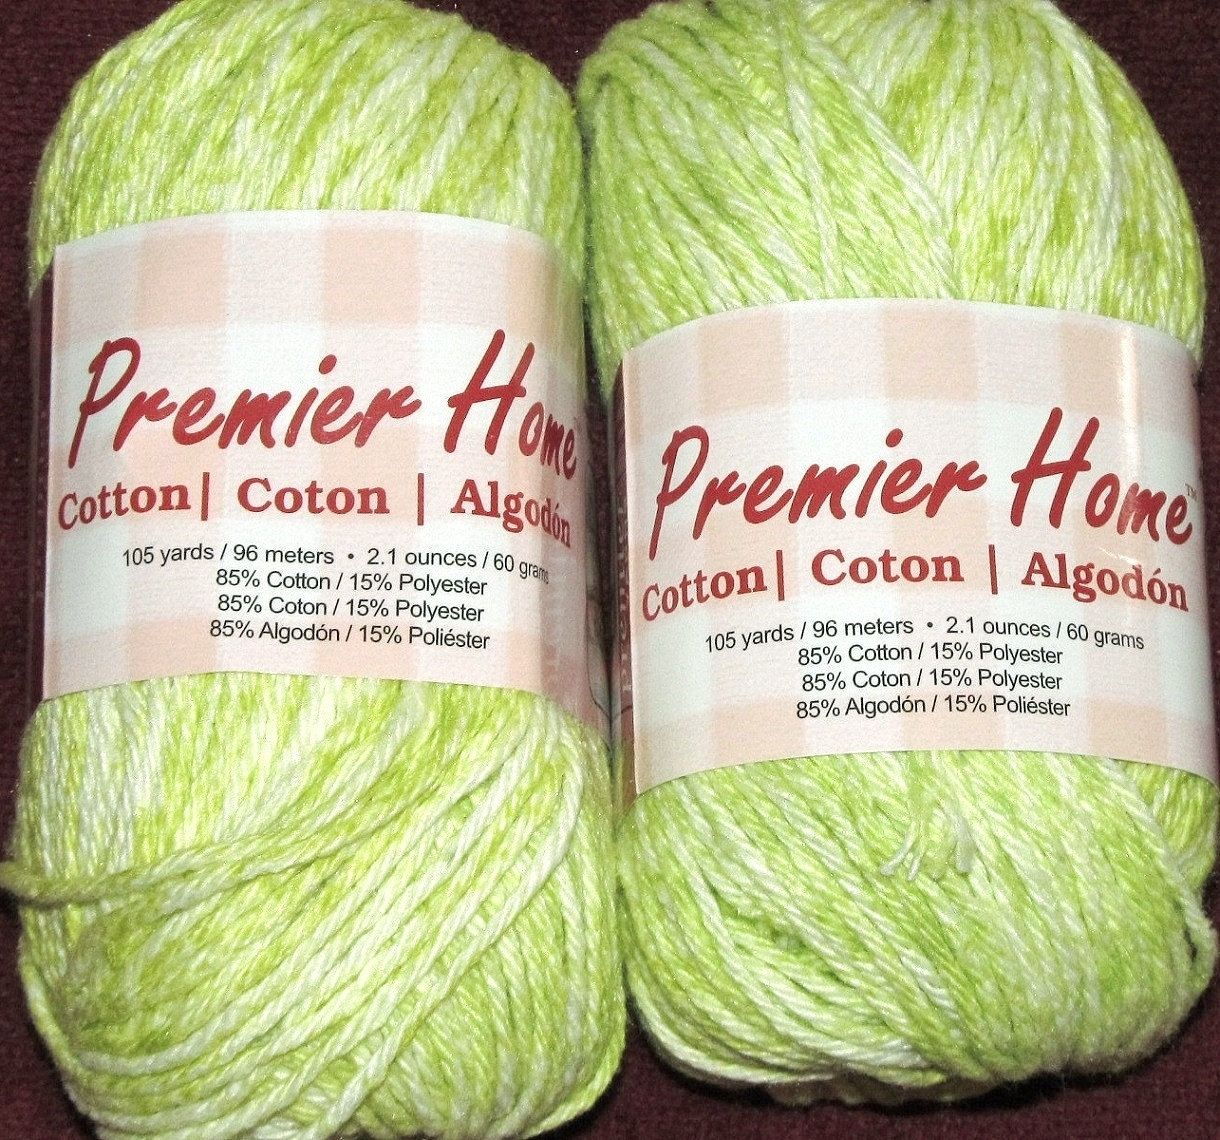 Two Balls Premier Home Medium Worsted Thread Yarn 85-15% Cotton Polyester Lot 1519, Color 44-26 Honeydew Splash Green White 105 Yd / 210 Yd by RosesPatternsEtc on Etsy